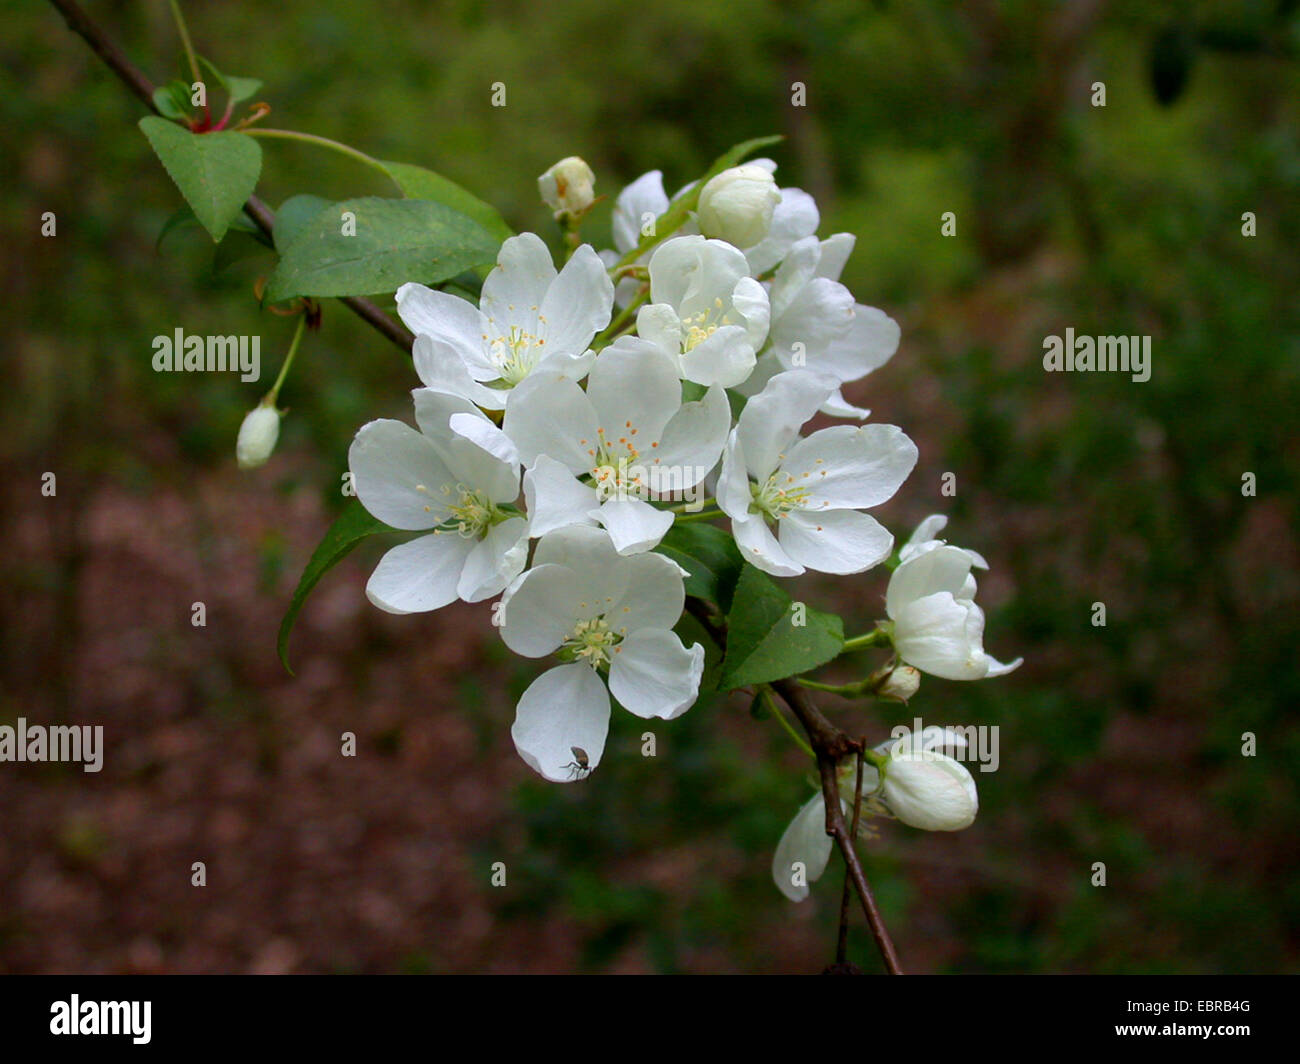 Shrub apple, Nippon Crabapple (Malus brevipes), blooming - Stock Image